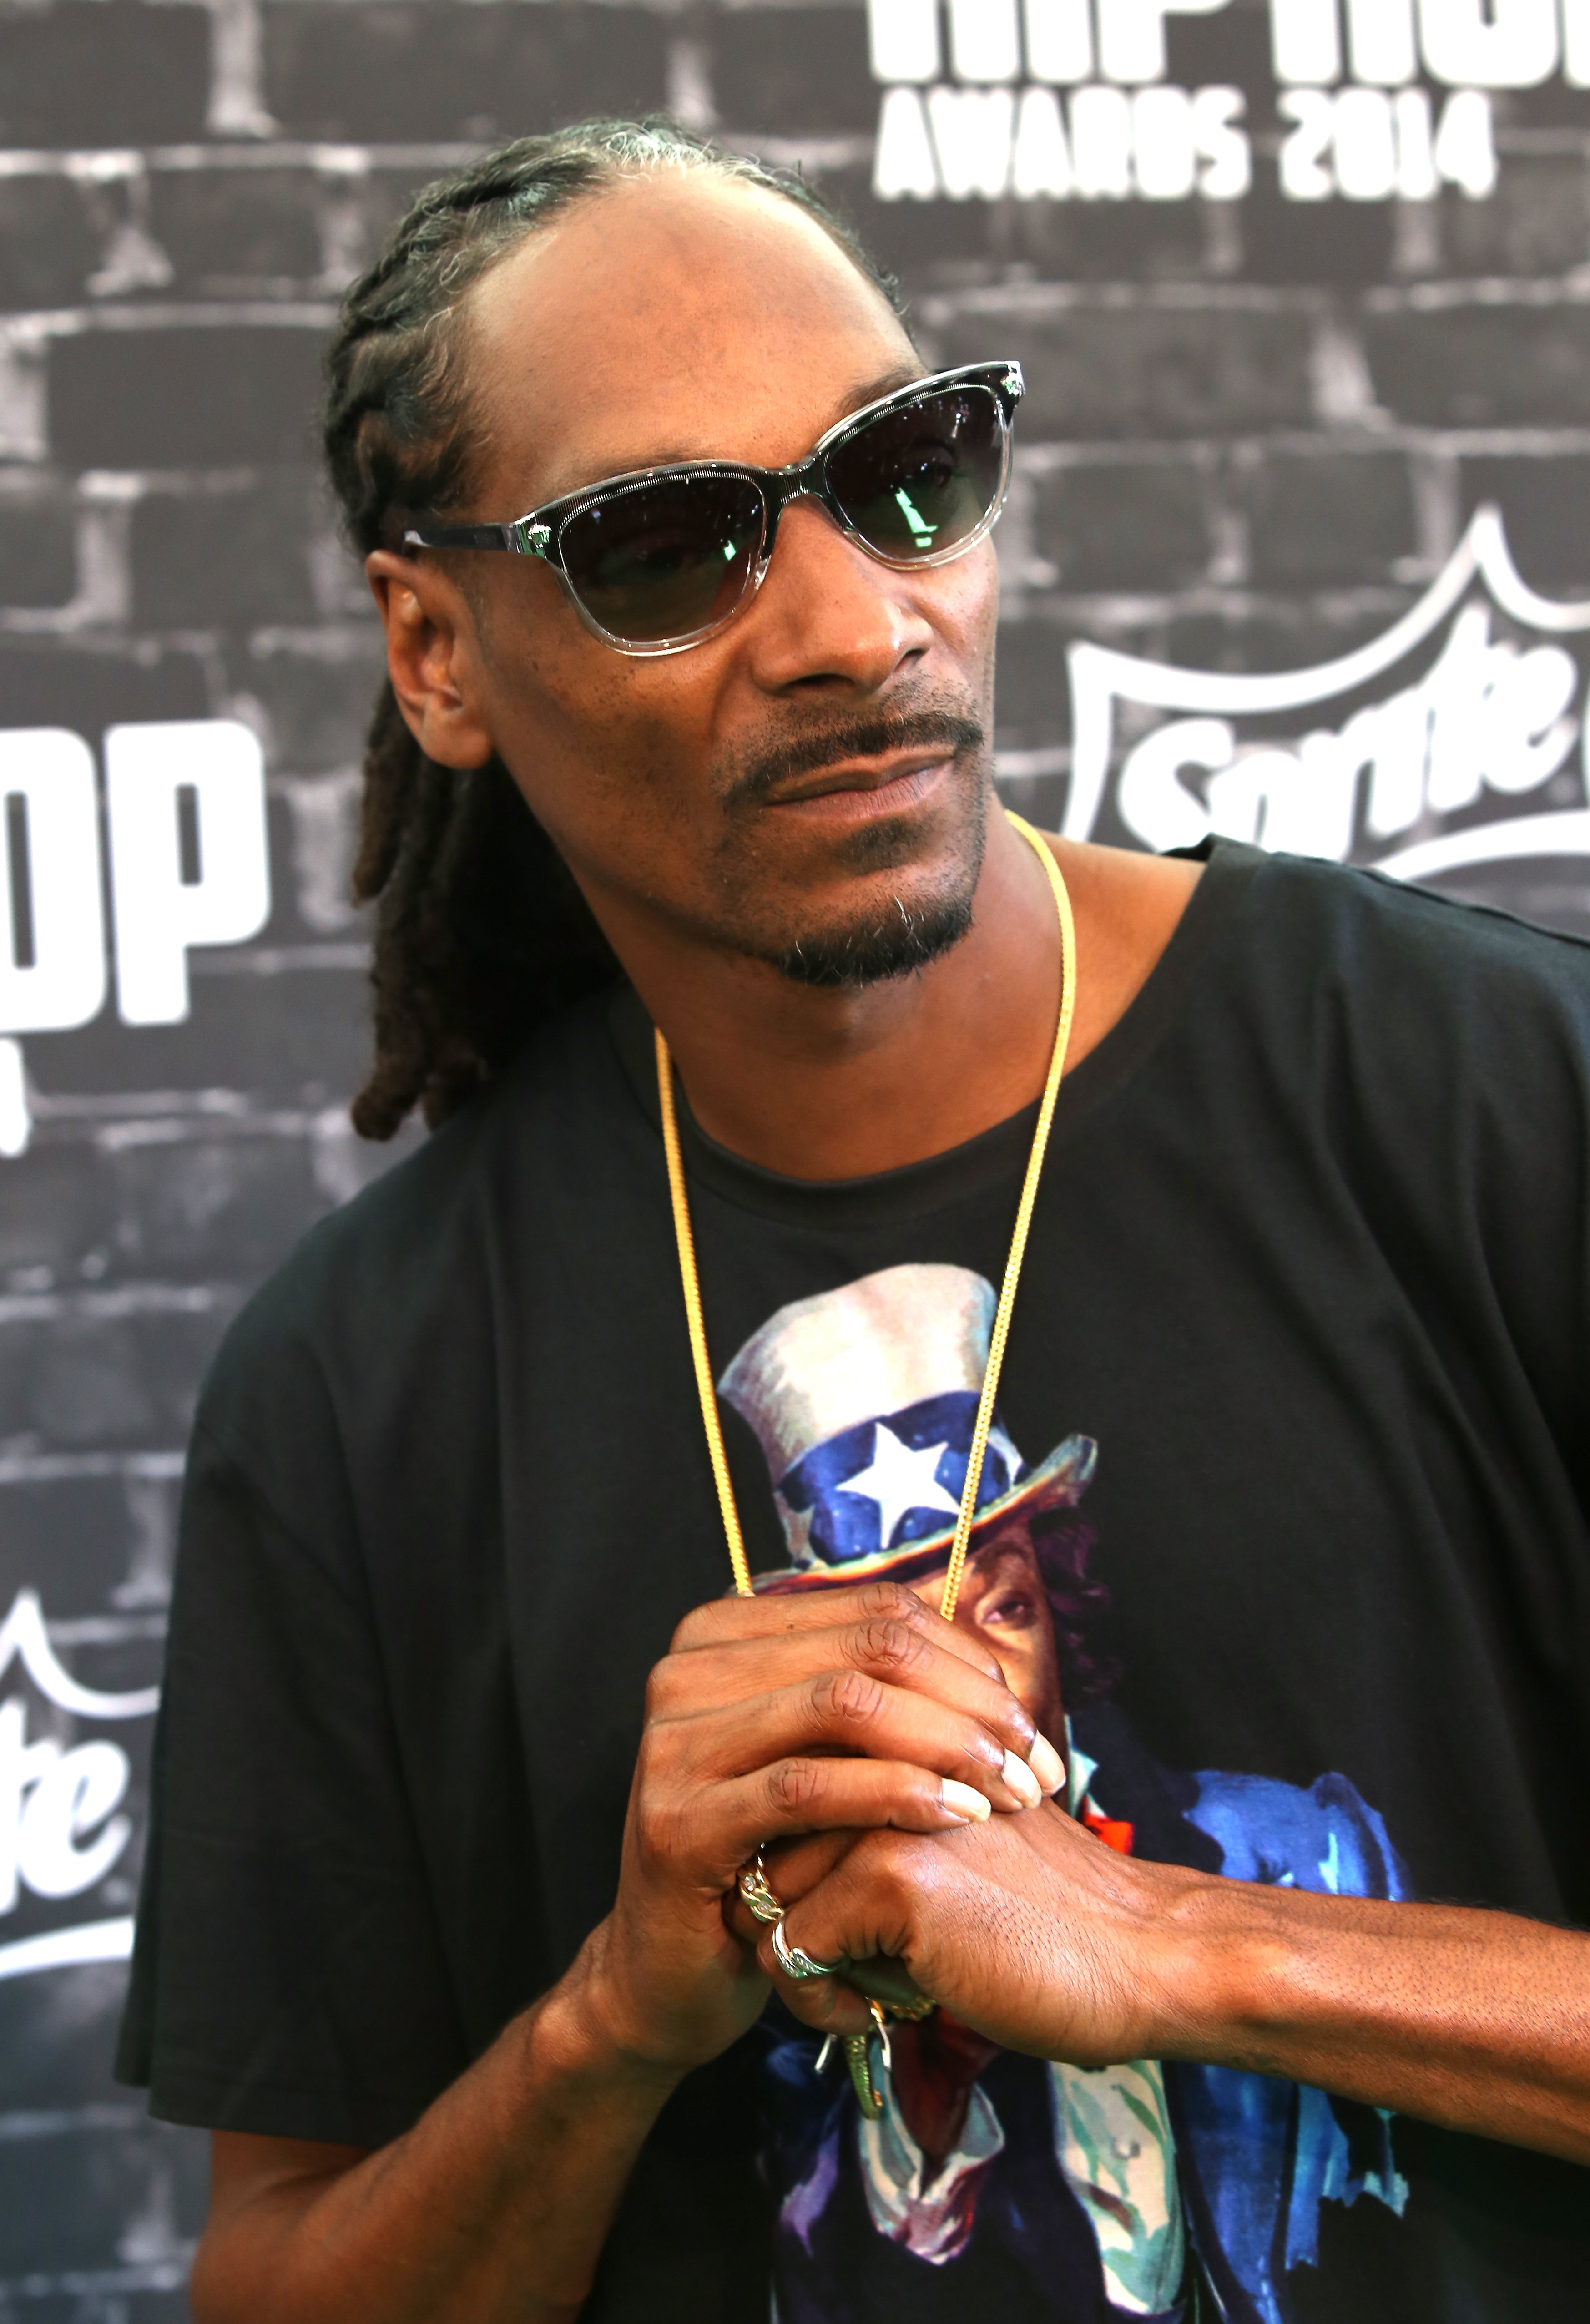 Snoop Dogg attends the BET Hip Hop Awards 2014 on September 20, 2014. | Photo: GettyImages